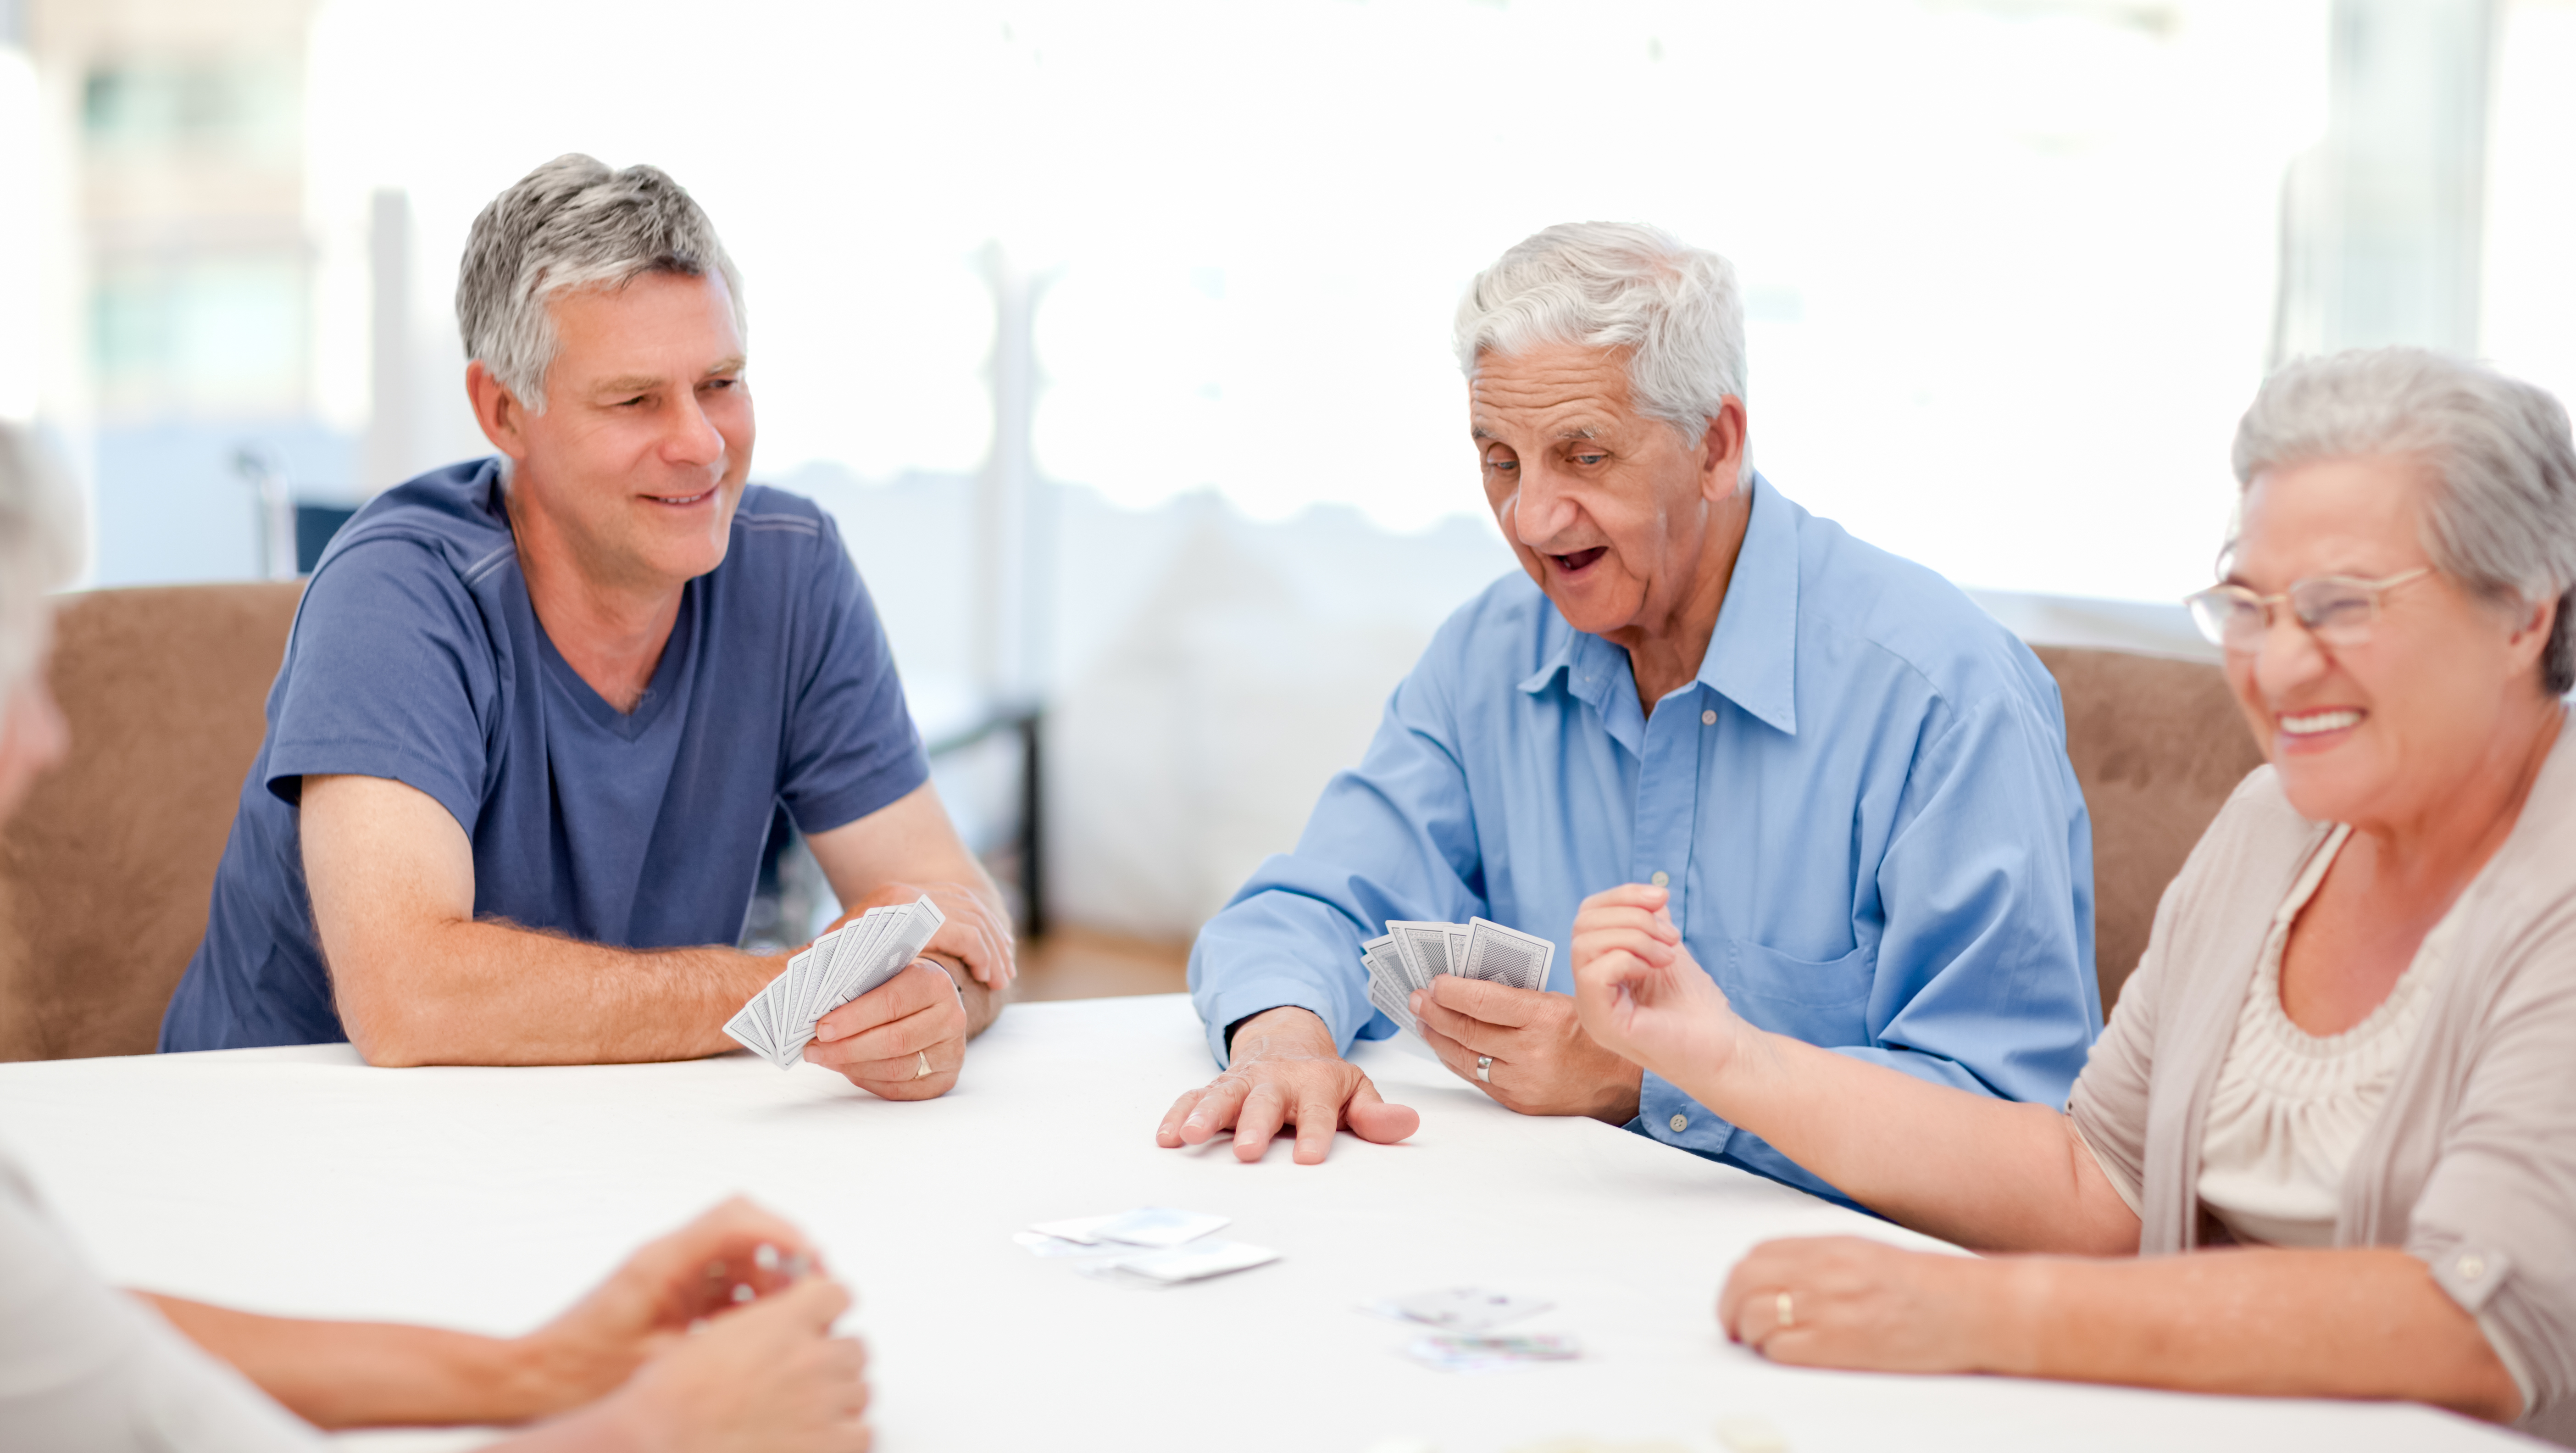 3 ways to combat boredom and isolation: Engaging activities for older adults